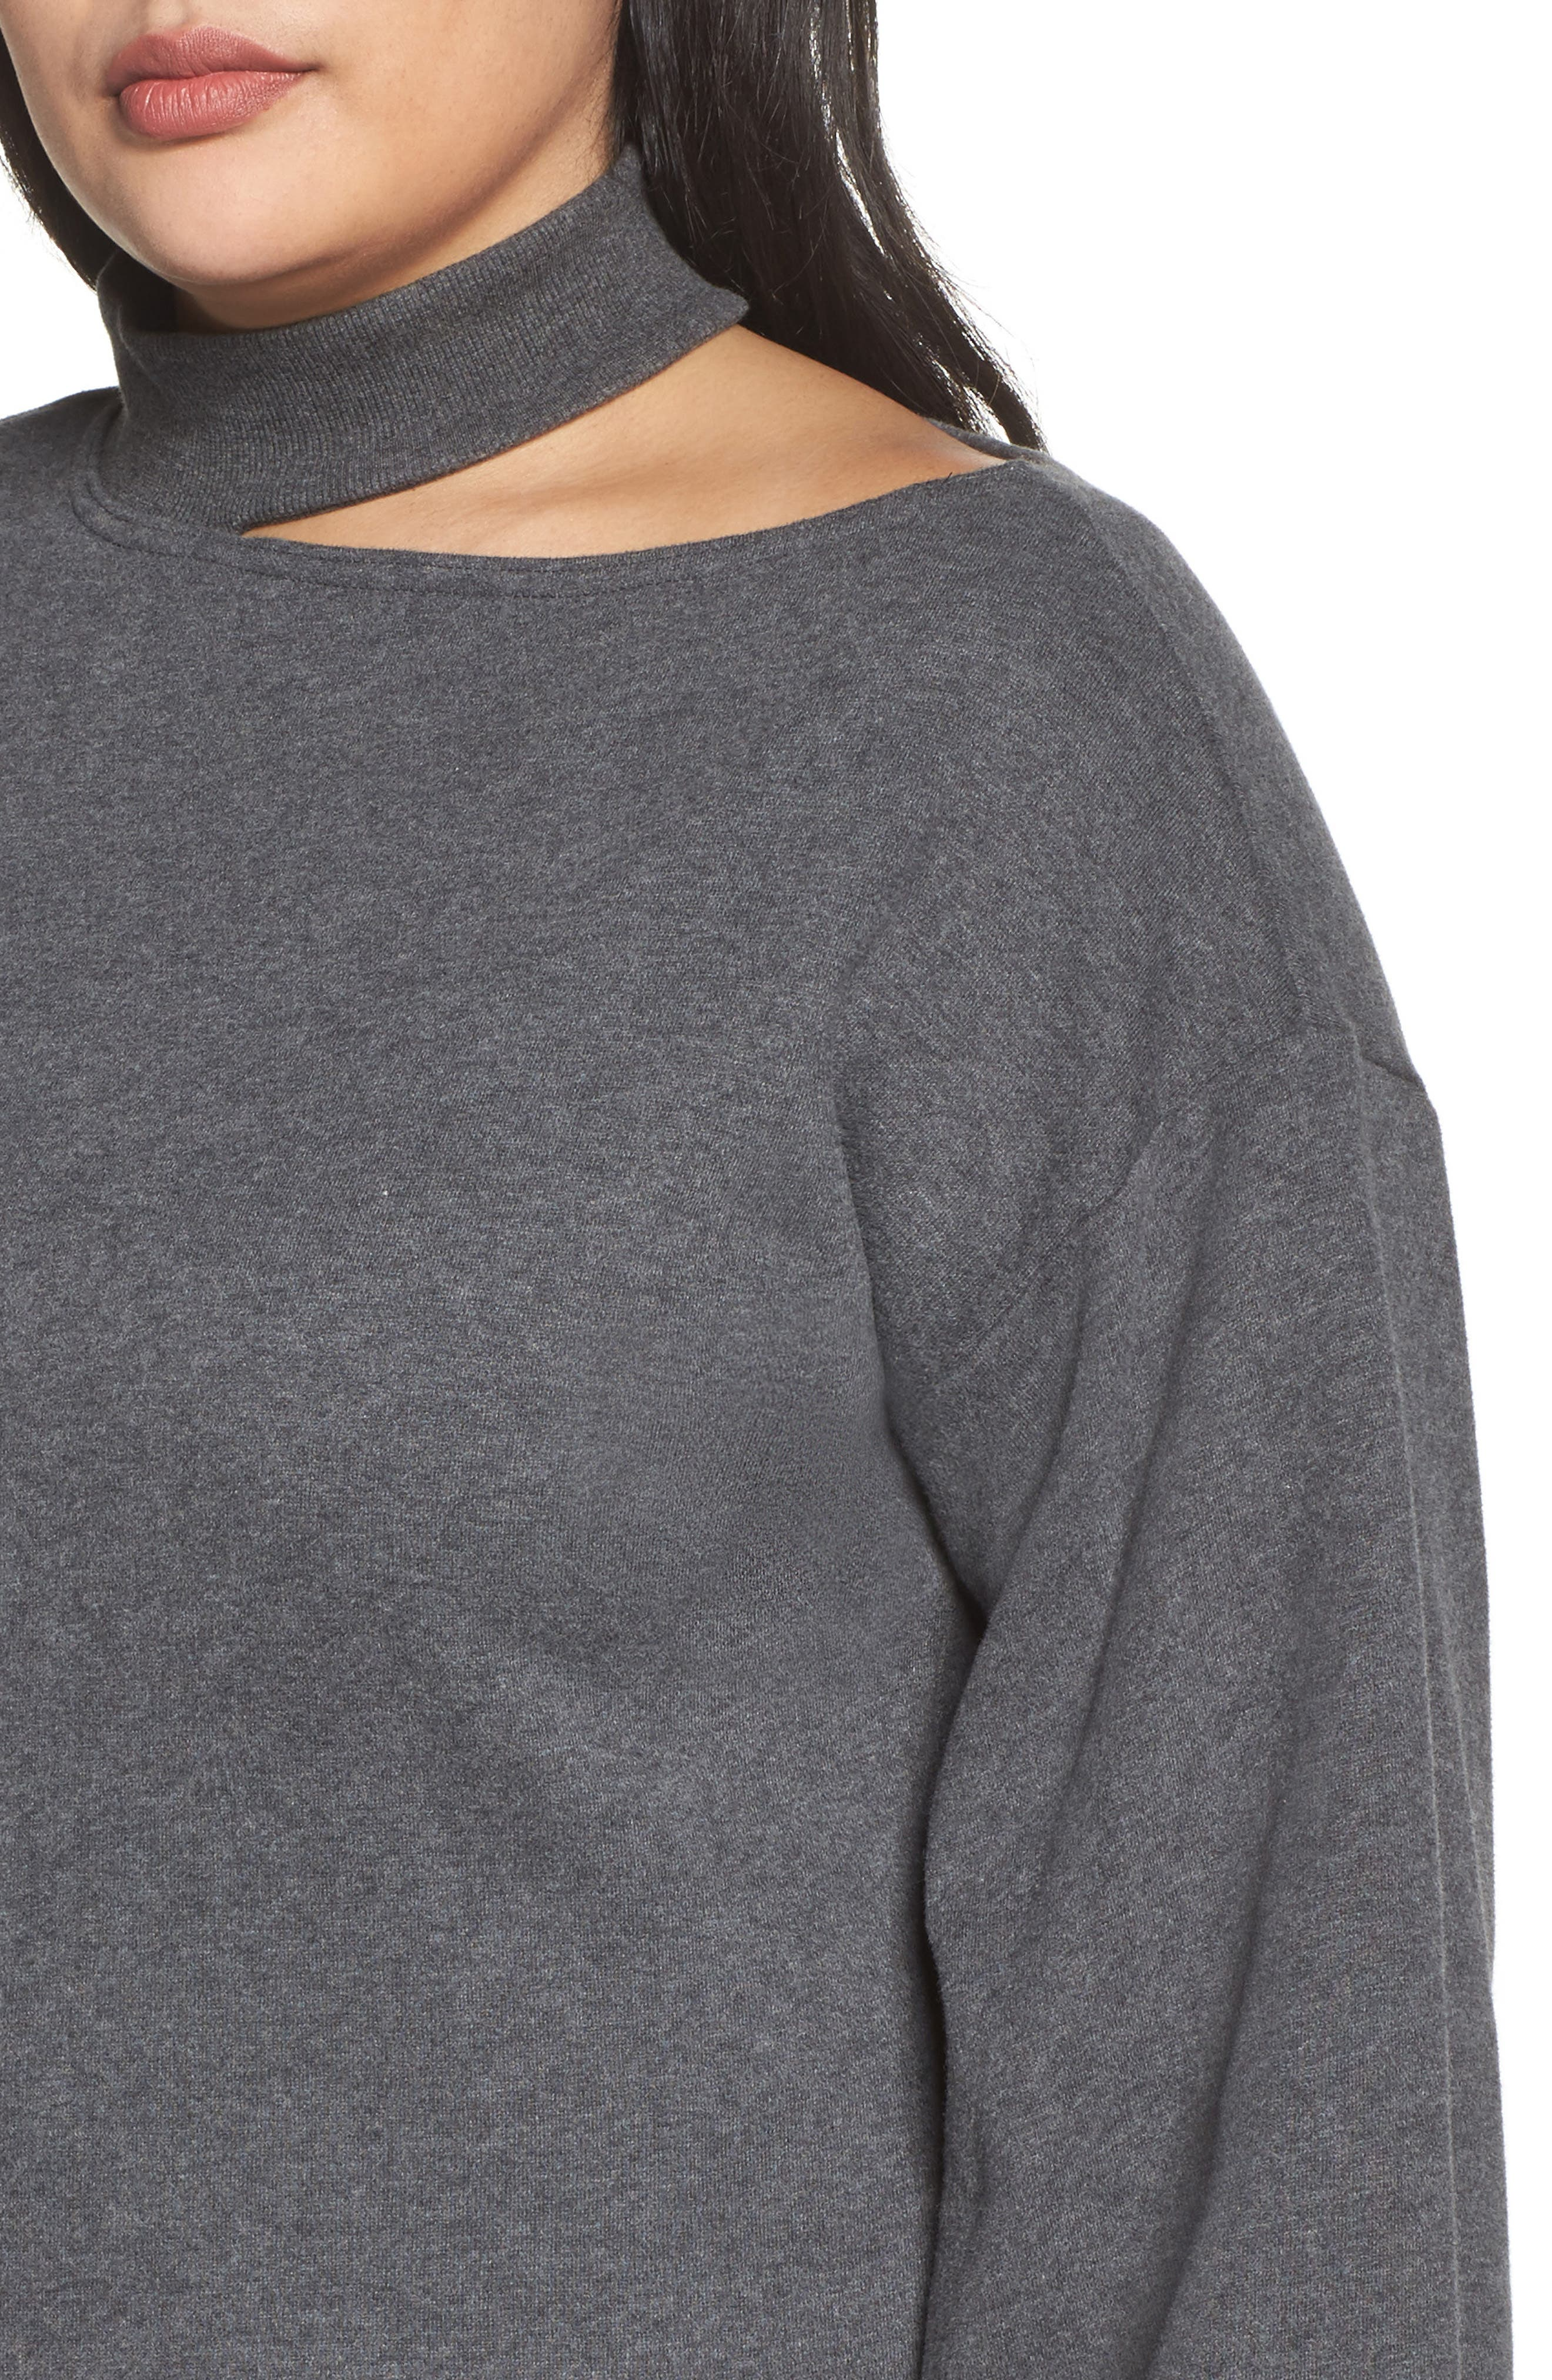 Cutout Mock Neck Top,                             Alternate thumbnail 4, color,                             023